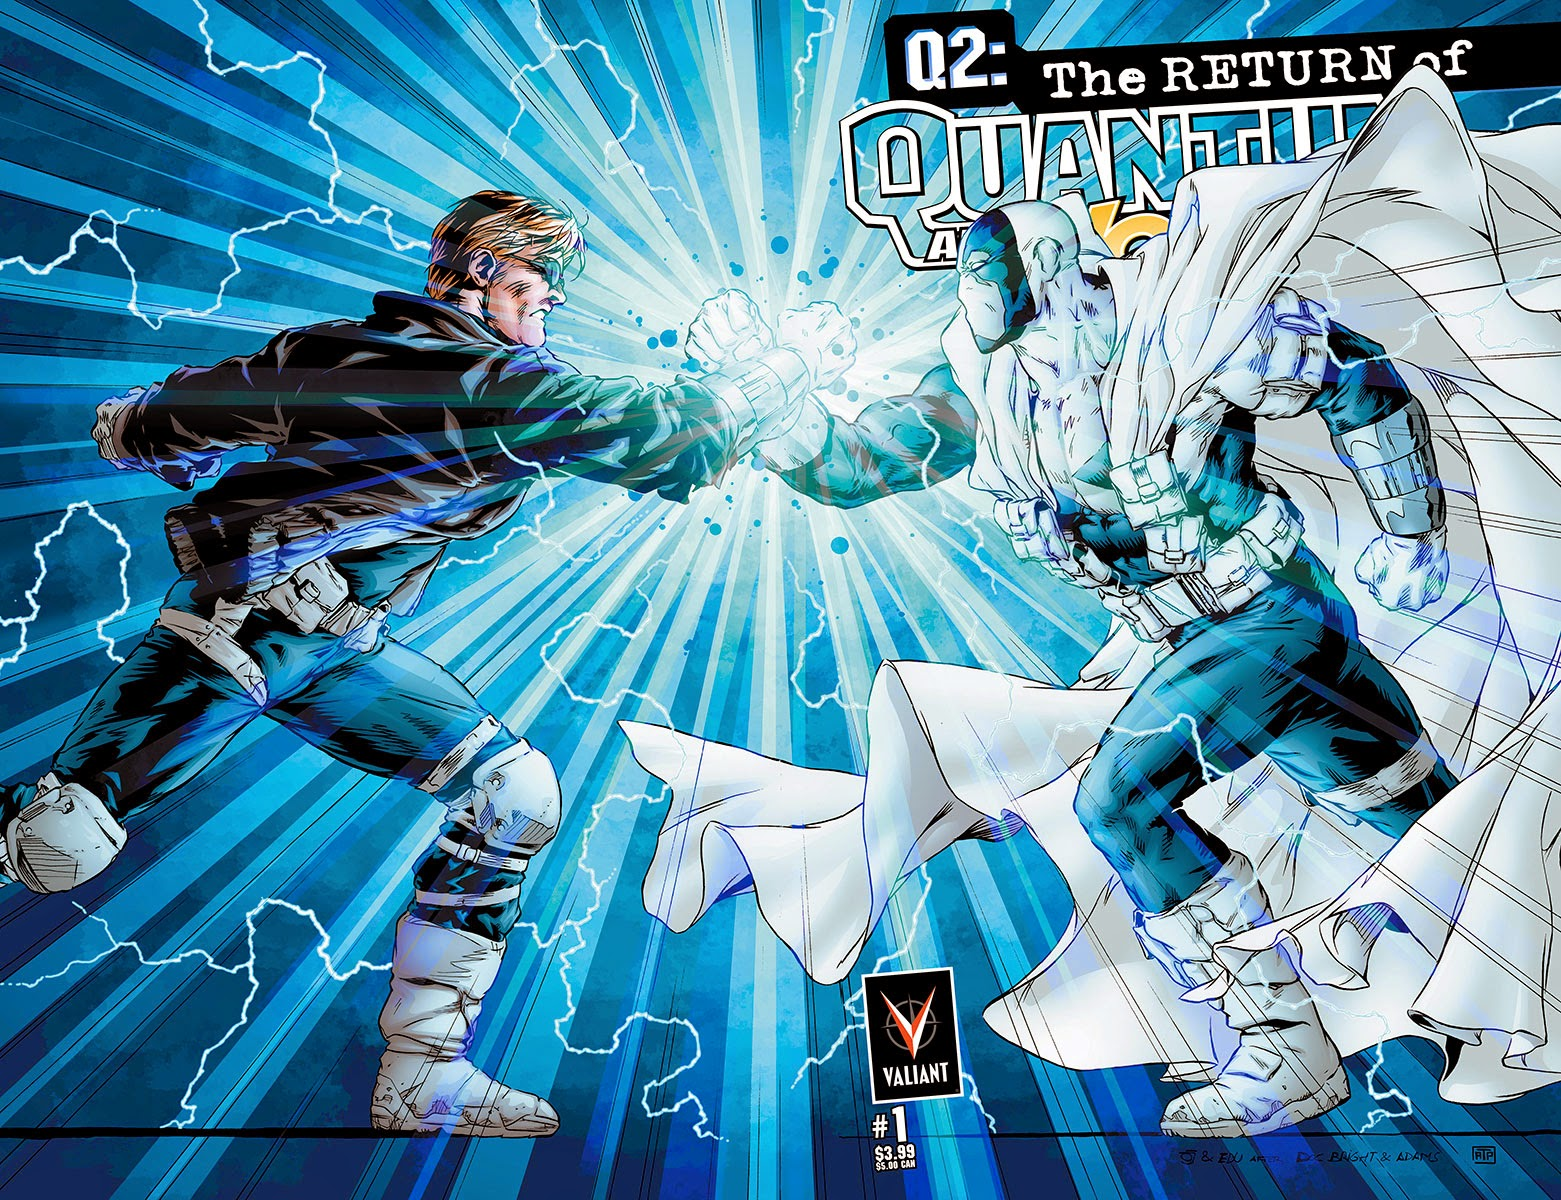 Valiant Preview Q2: THE RETURN OF QUANTUM AND WOODY #1 by Christopher Priest and M D Bright